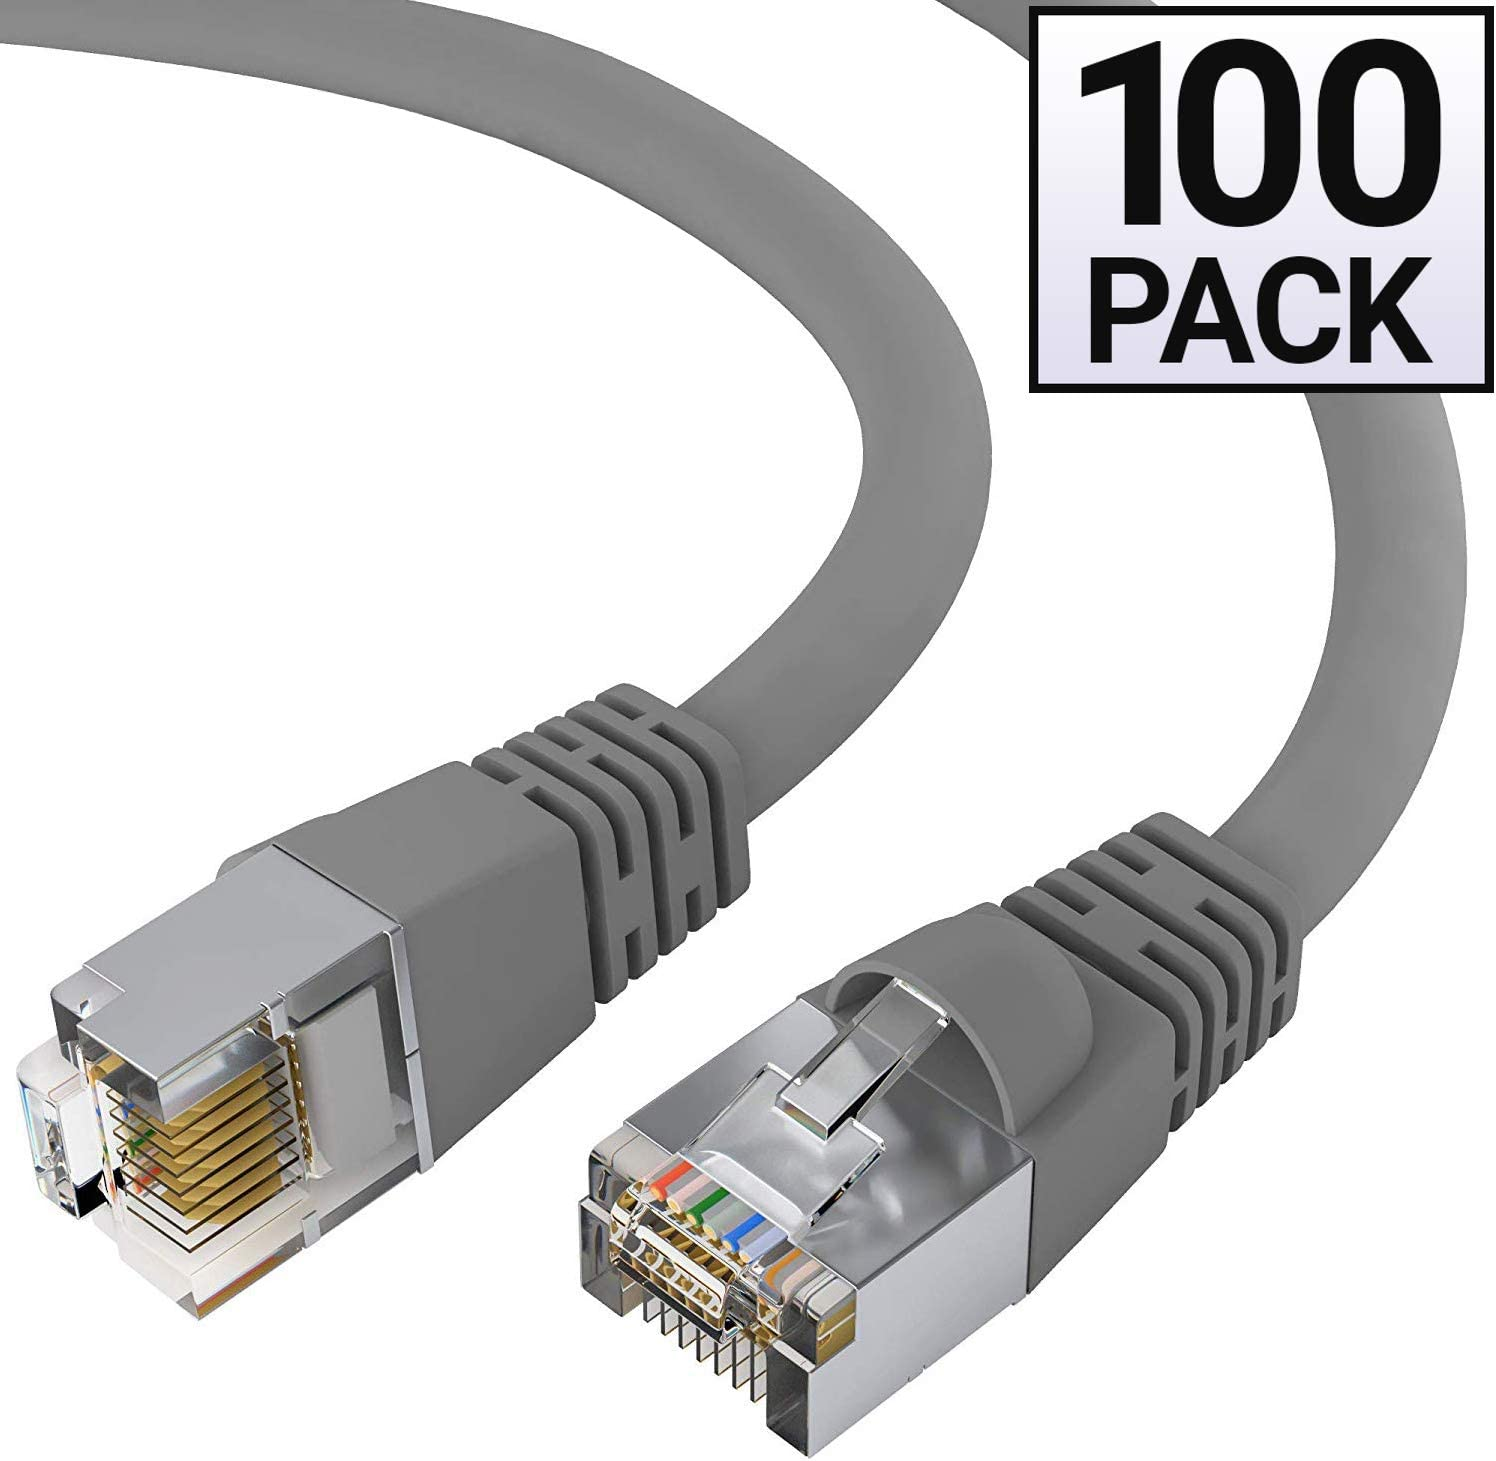 GOWOS 50-Pack 7 Feet - Gray FTP RJ45 10Gbps High Speed LAN Internet Cord Available in 28 Lengths and 10 Colors Cat5e Shielded Ethernet Cable Computer Network Cable with Snagless Connector